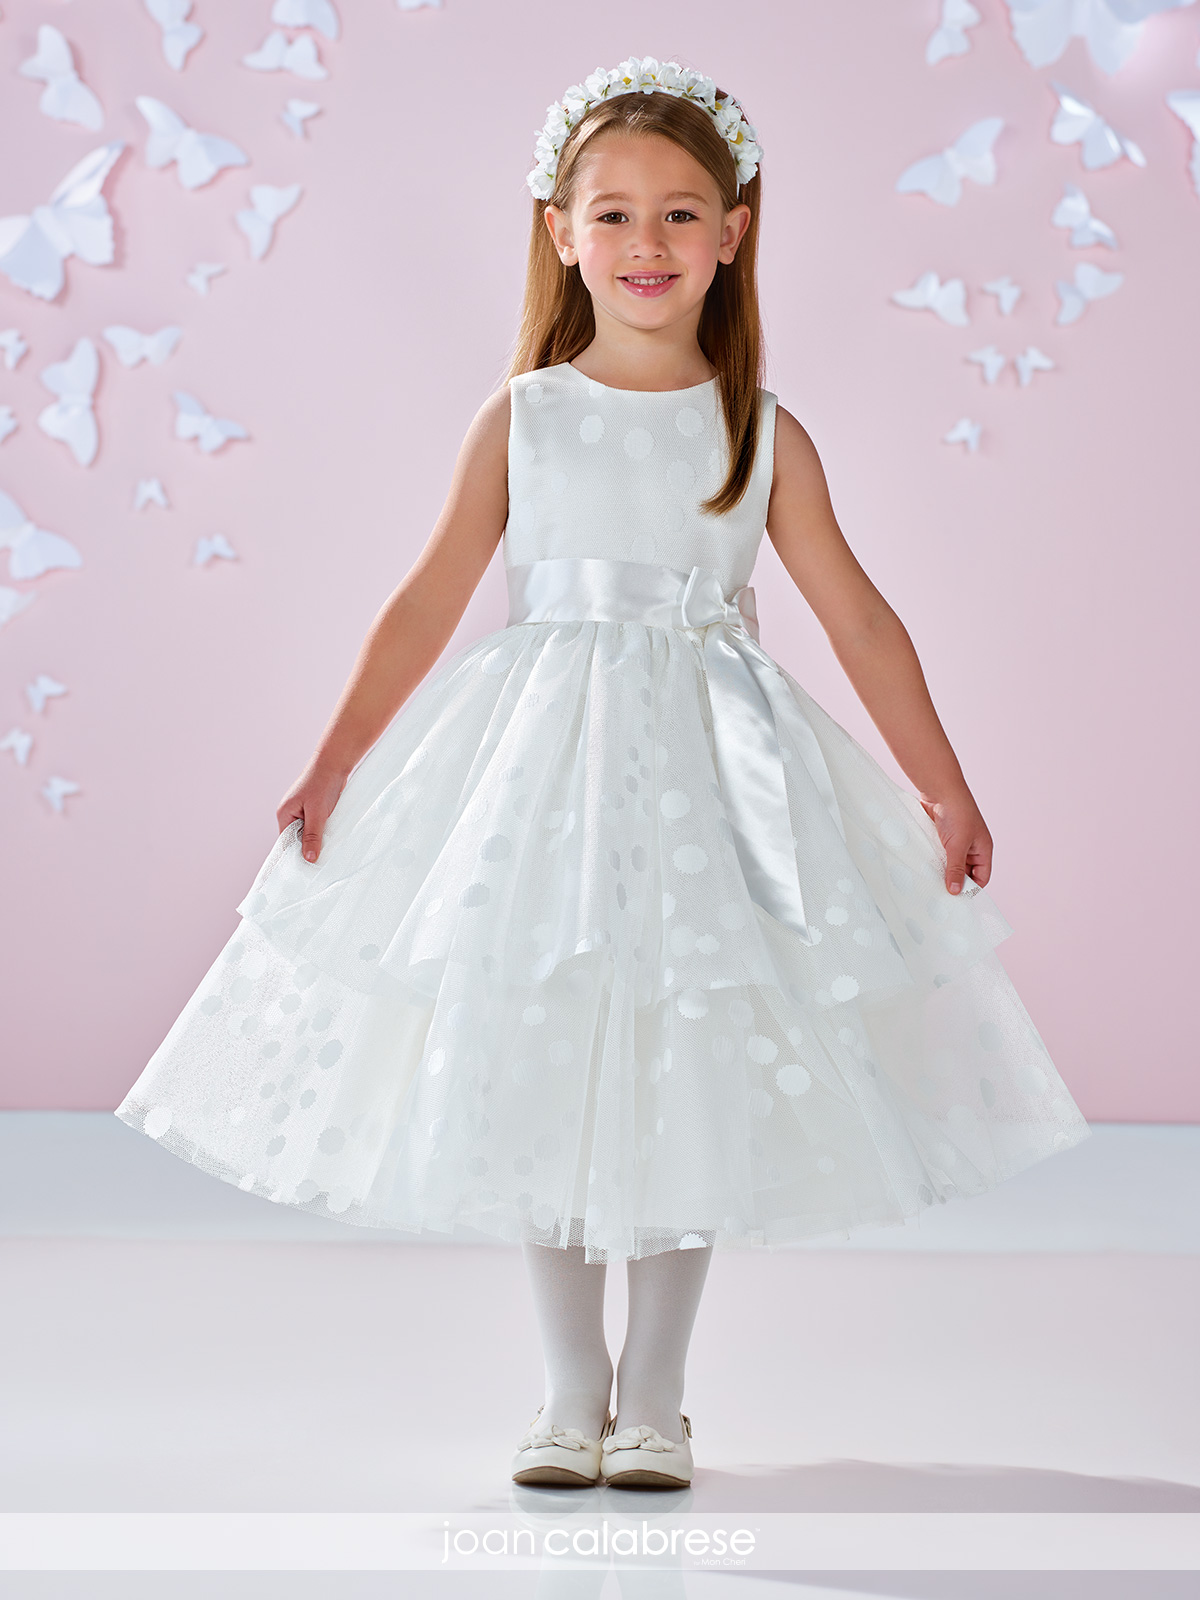 7407d7bf566 Joan Calabrese-117348 Communion Dress